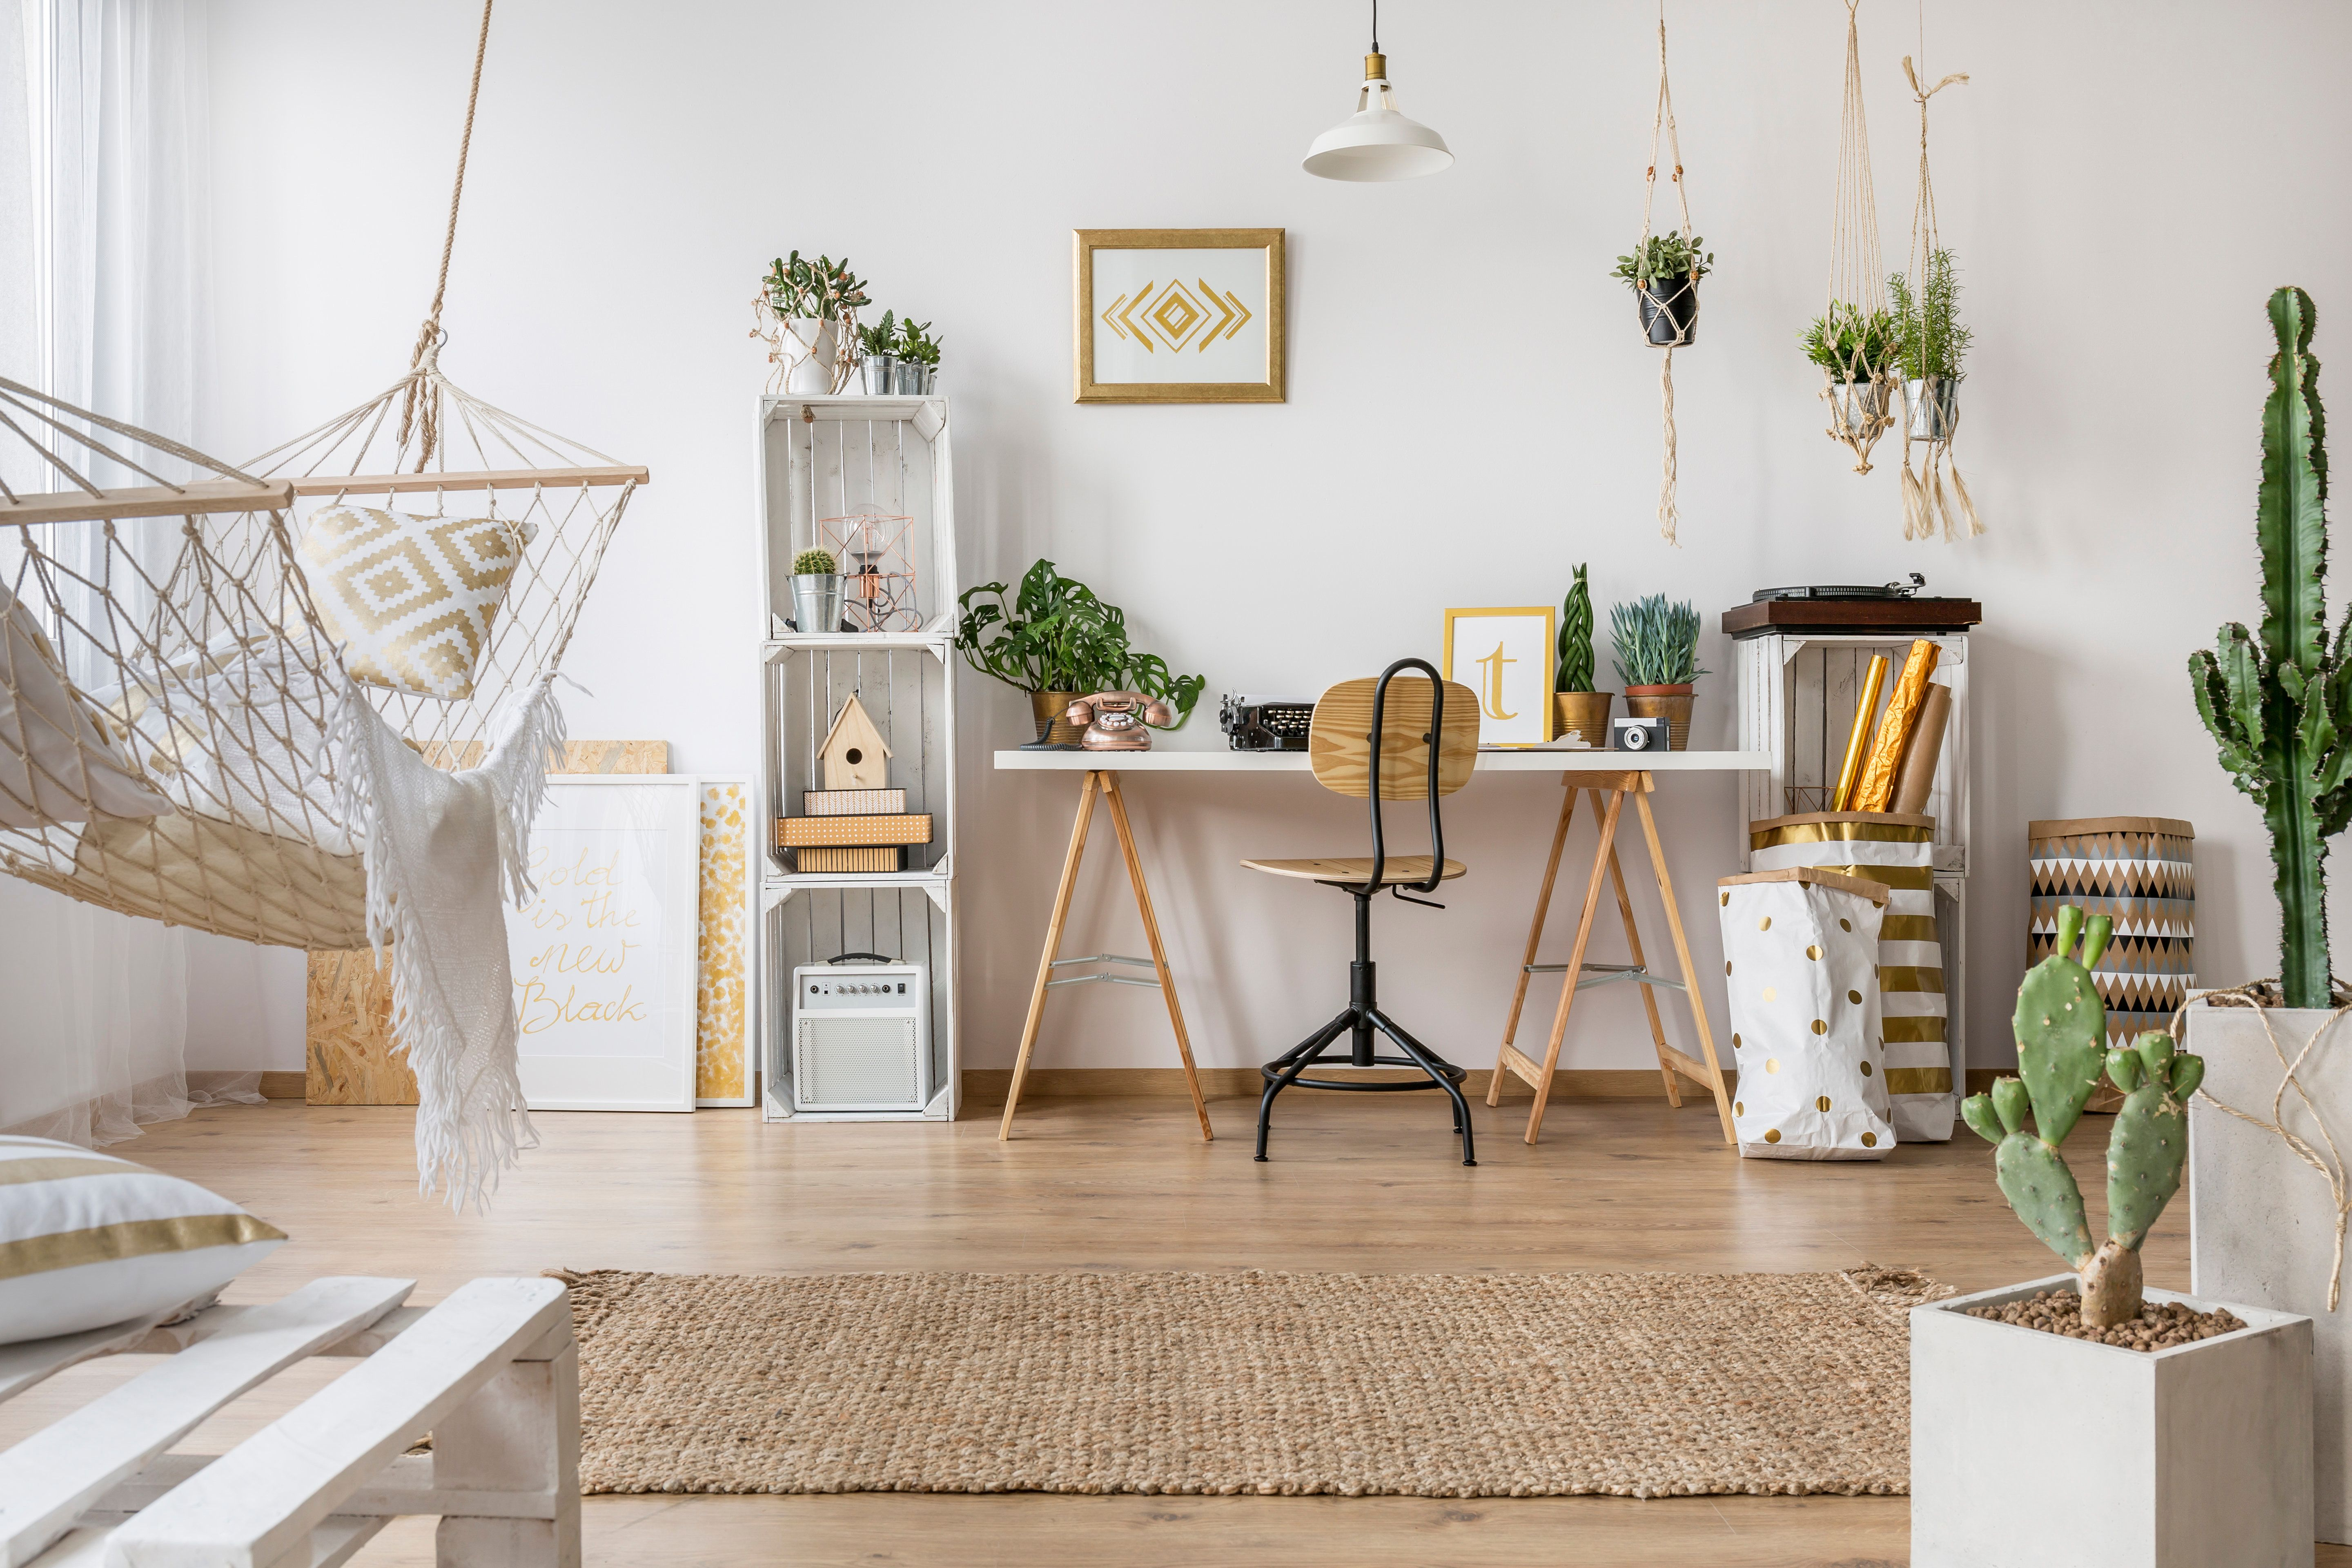 Marvelous 17 Affordable Bohemian Furniture And Home Decor Sites. Headshot. By  Brittany Nims. KatarzynaBialasiewicz Via Getty Images